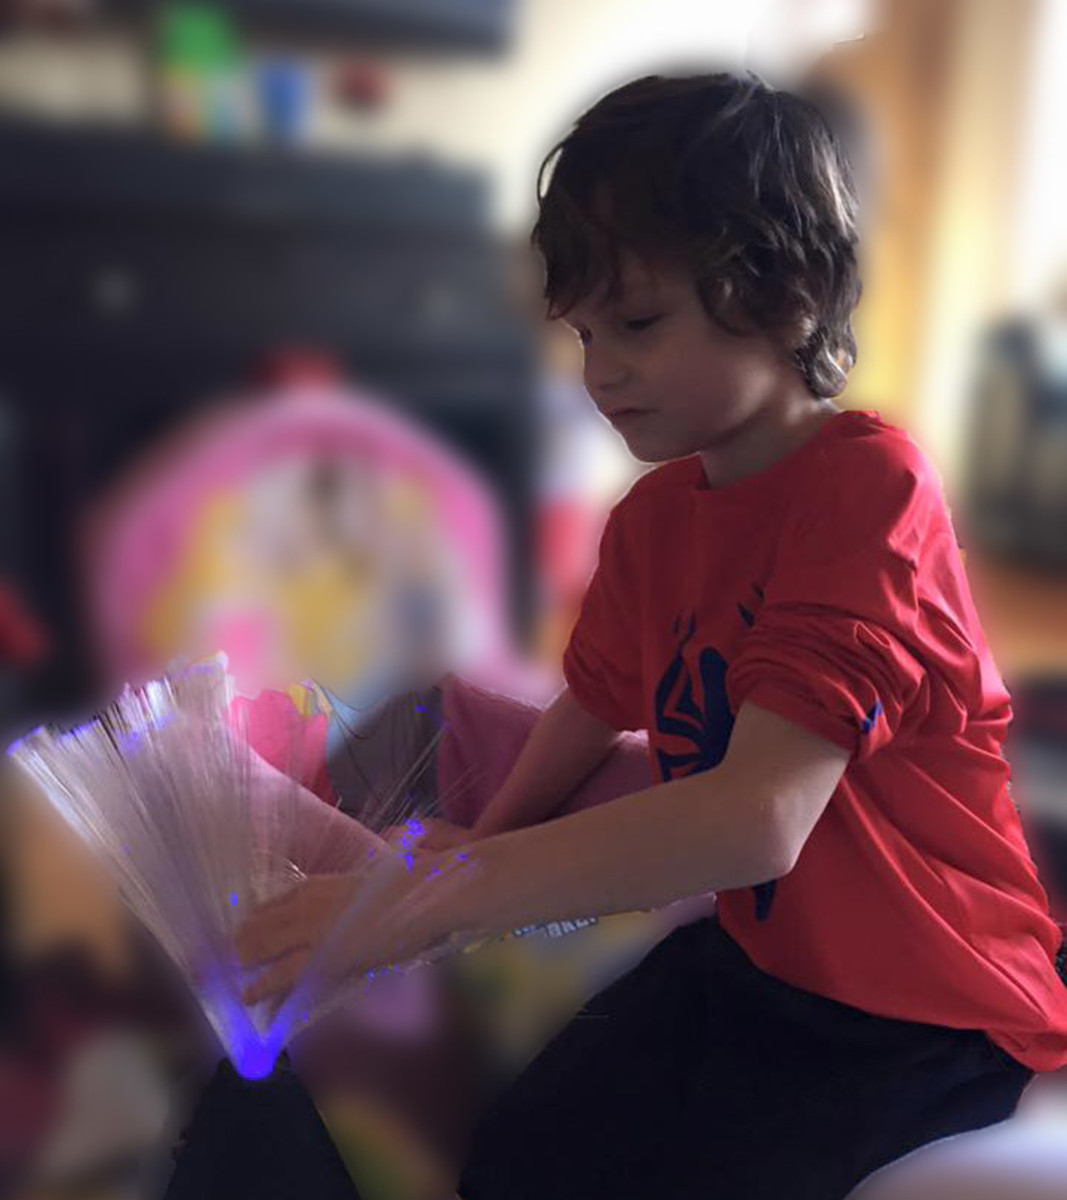 Light up Toy for Sensory enjoyment